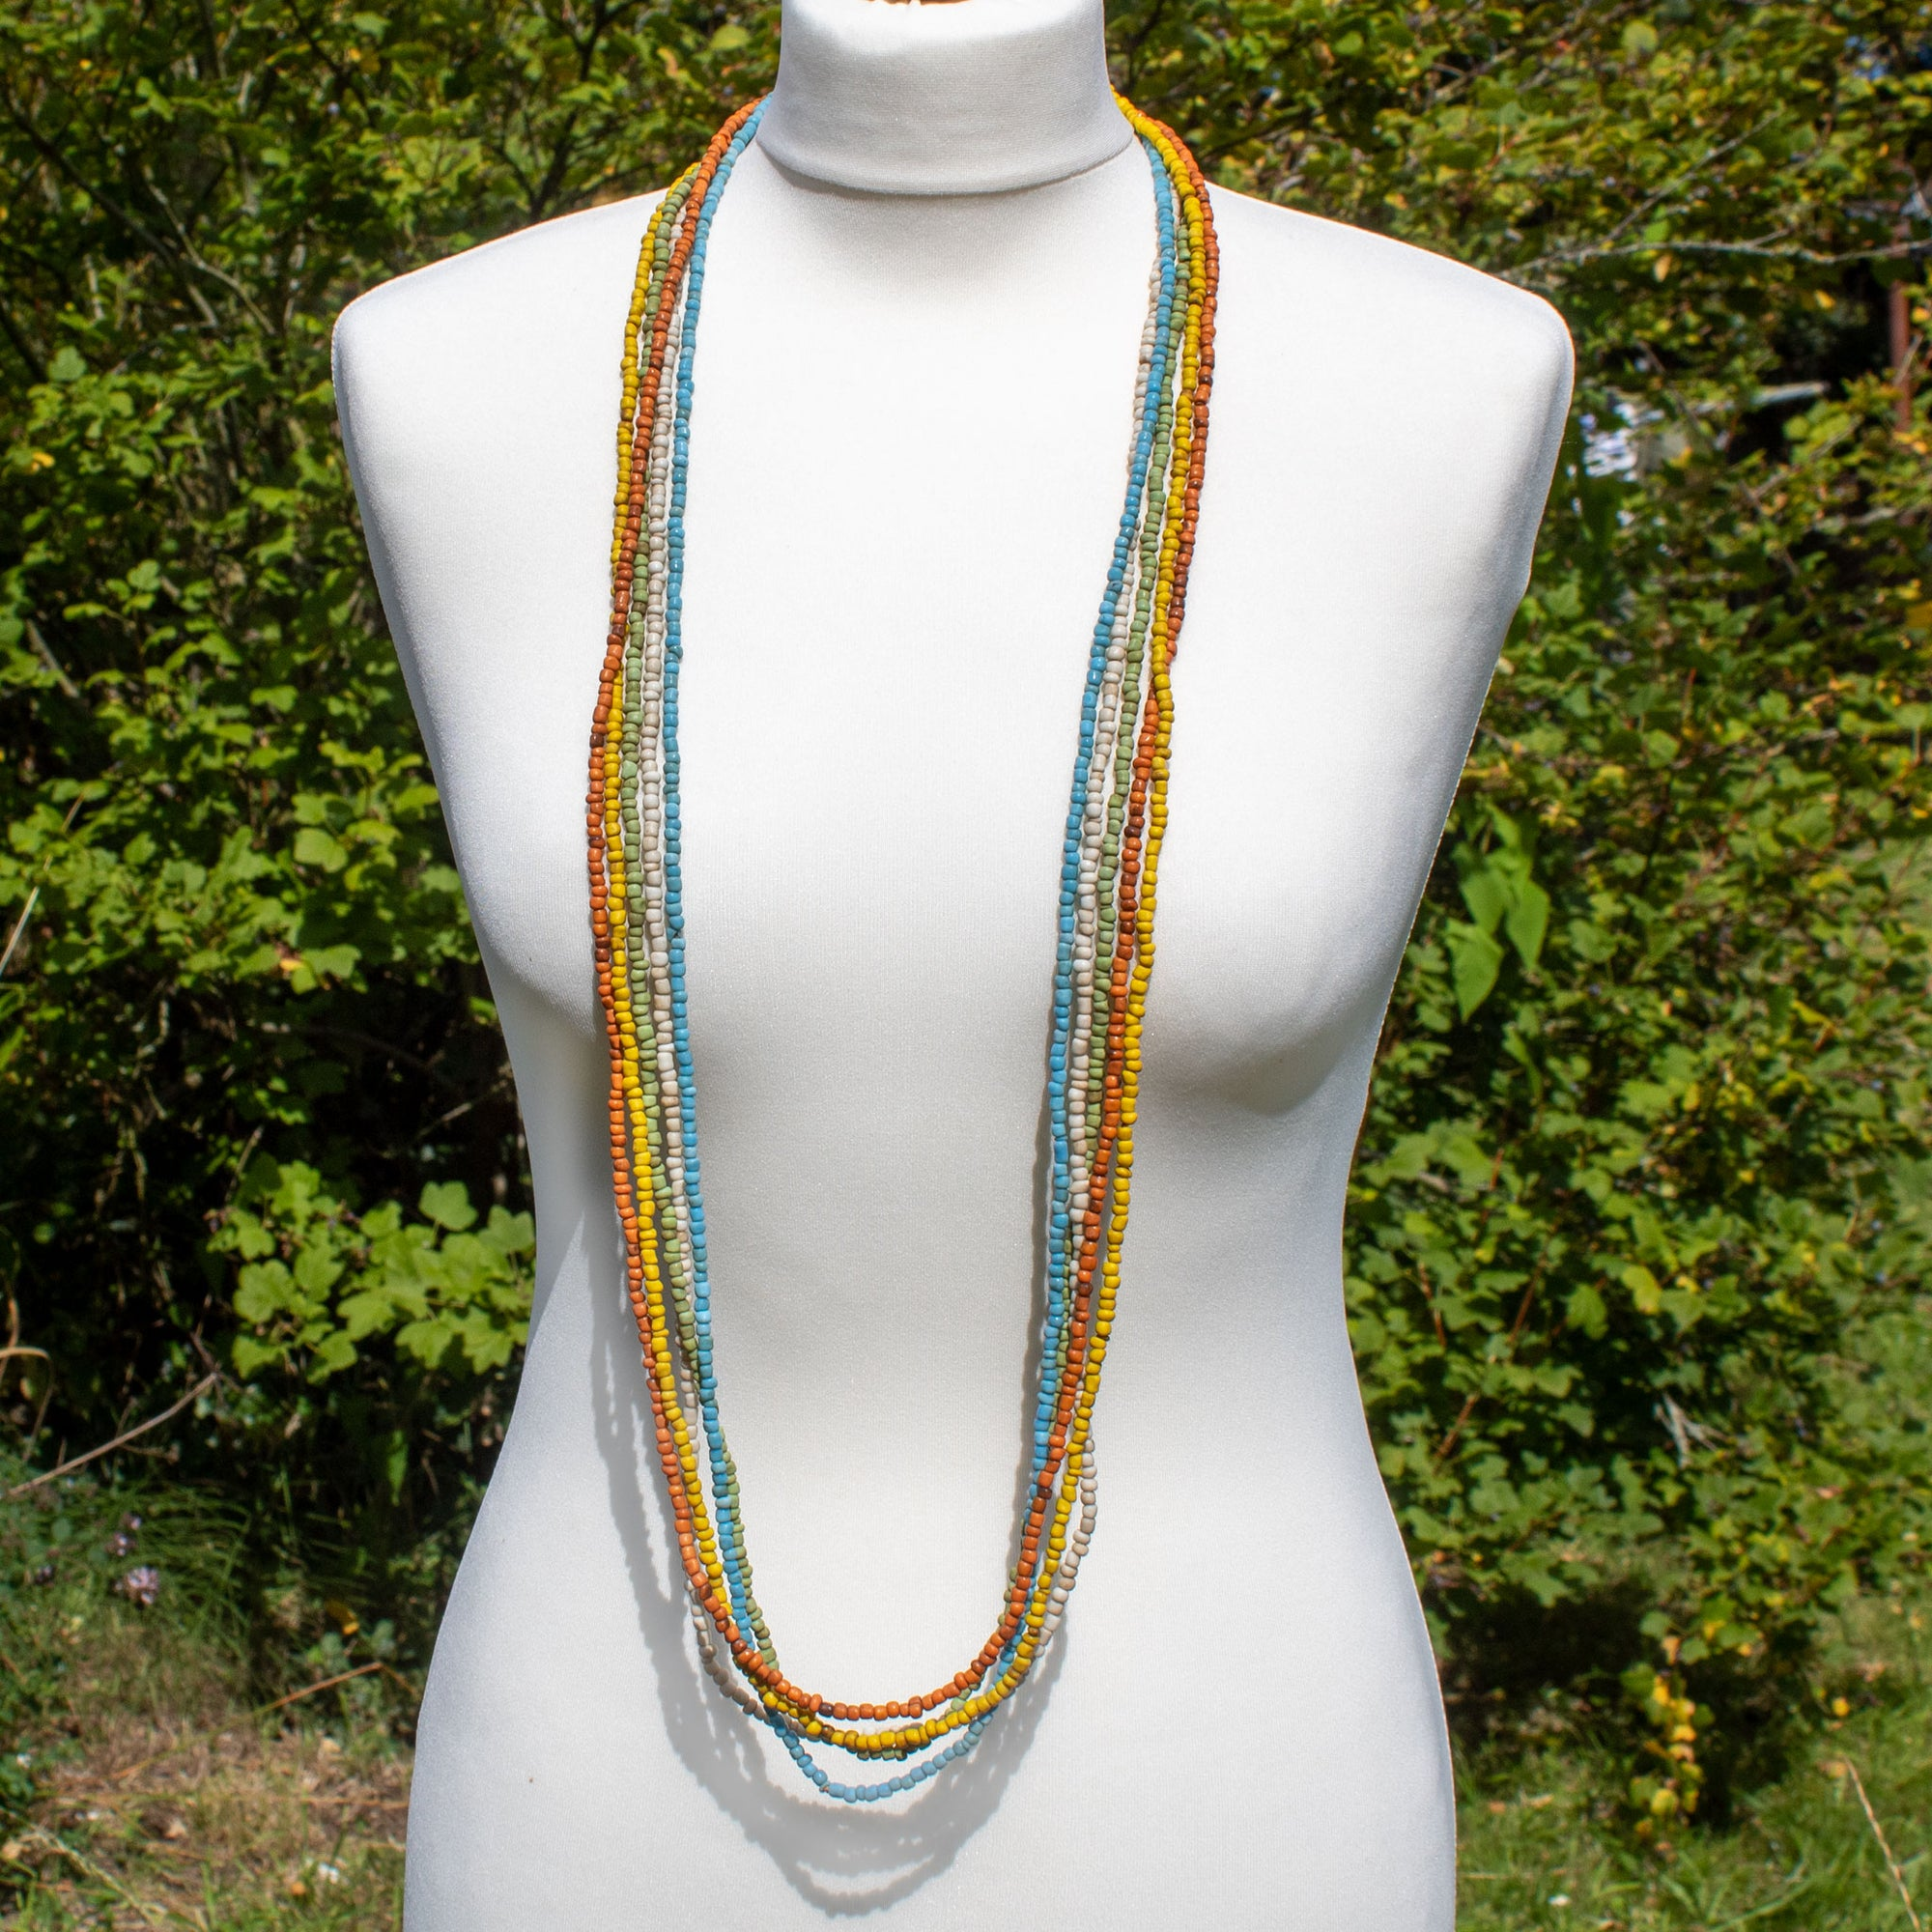 Long Coloured Glass Bead Multi-strand Necklace | Necklace - The Naughty Shrew